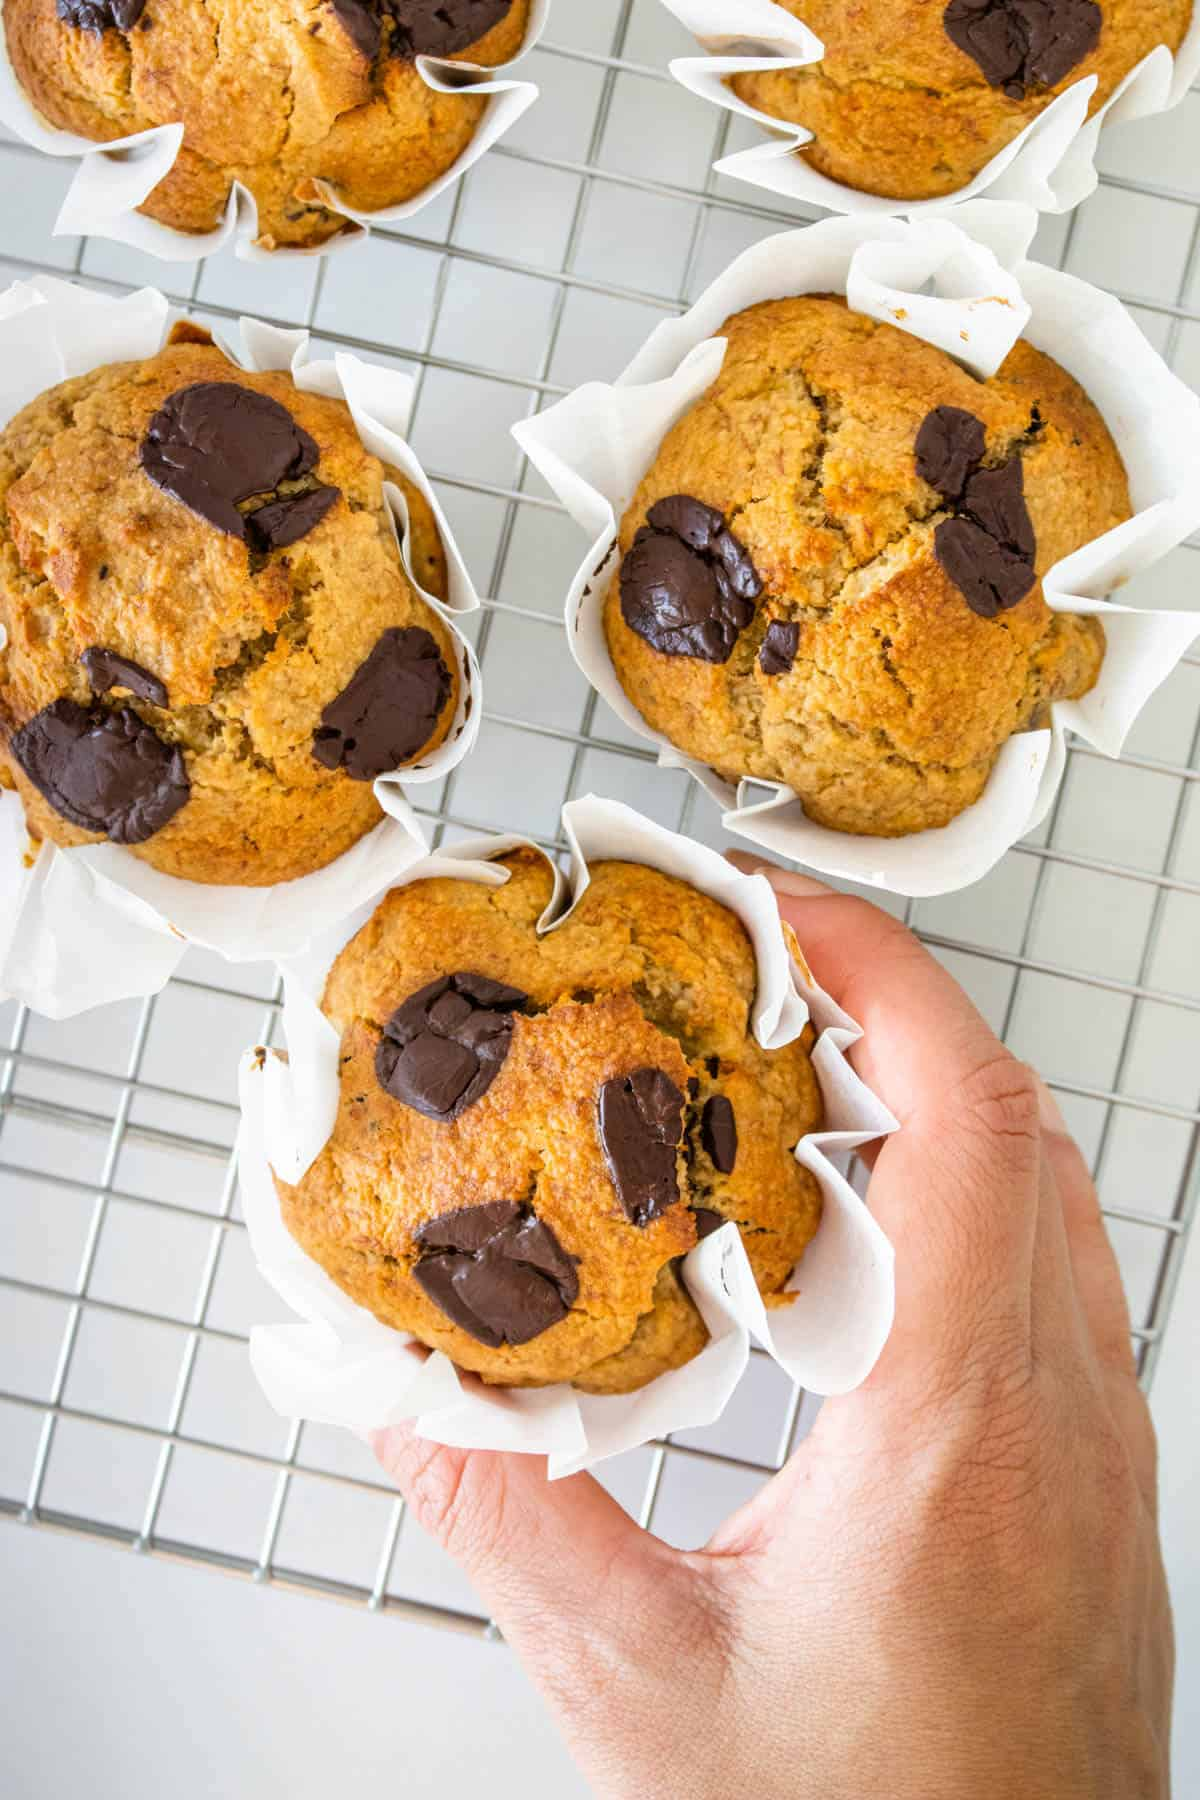 Motion of picking up a healthy banana chocolate chip muffin from the cooling rack